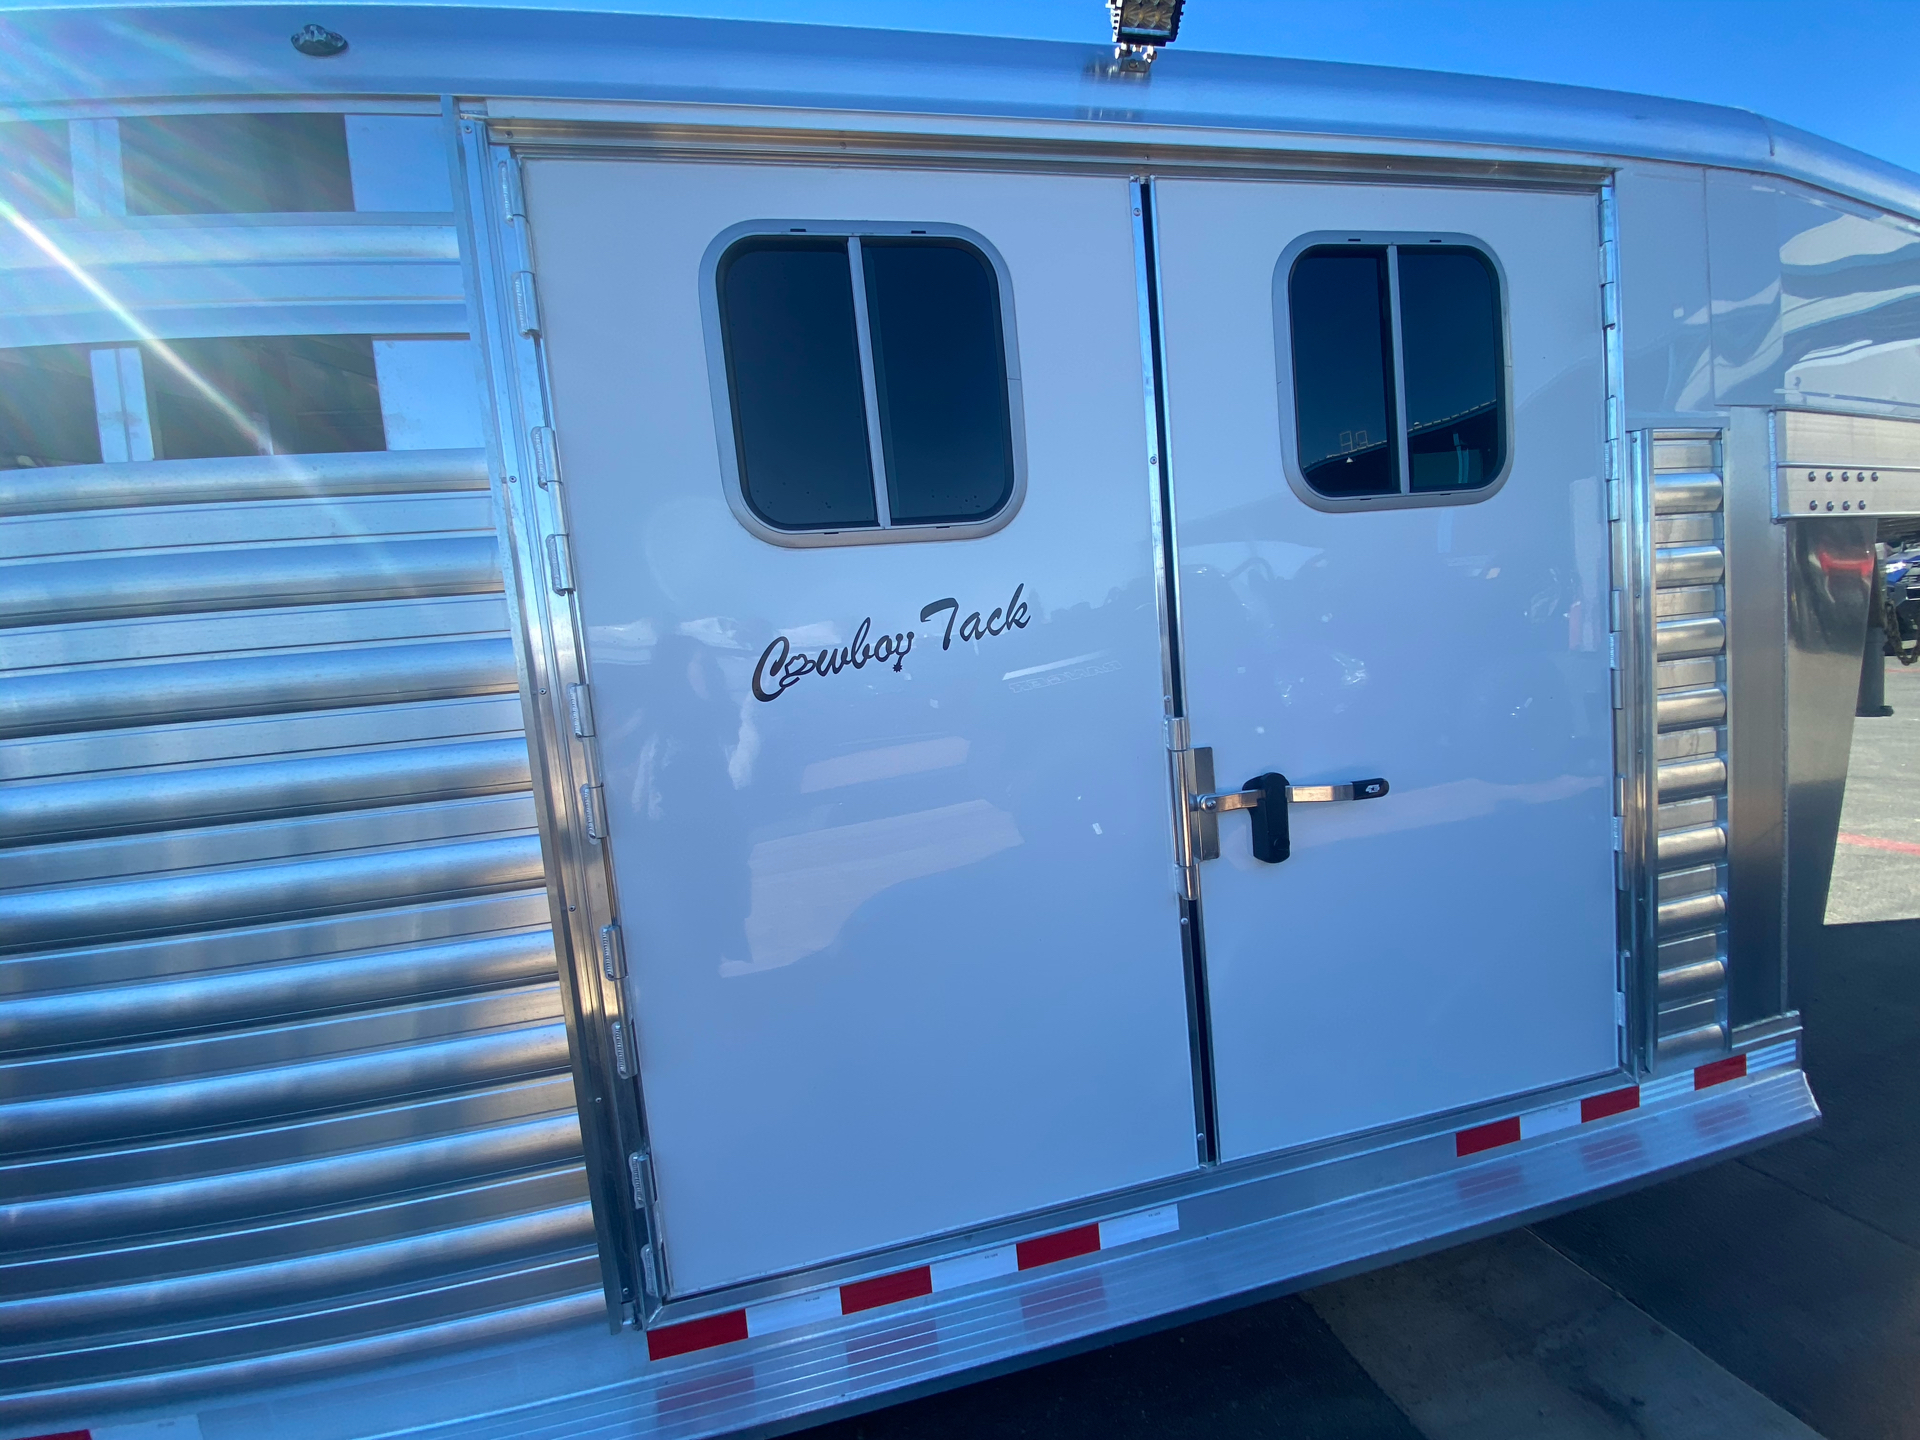 2022 4-STAR TRAILERS 7X24 DELUX STOCK COMBO W COWBOY TACK in Elk Grove, California - Photo 19